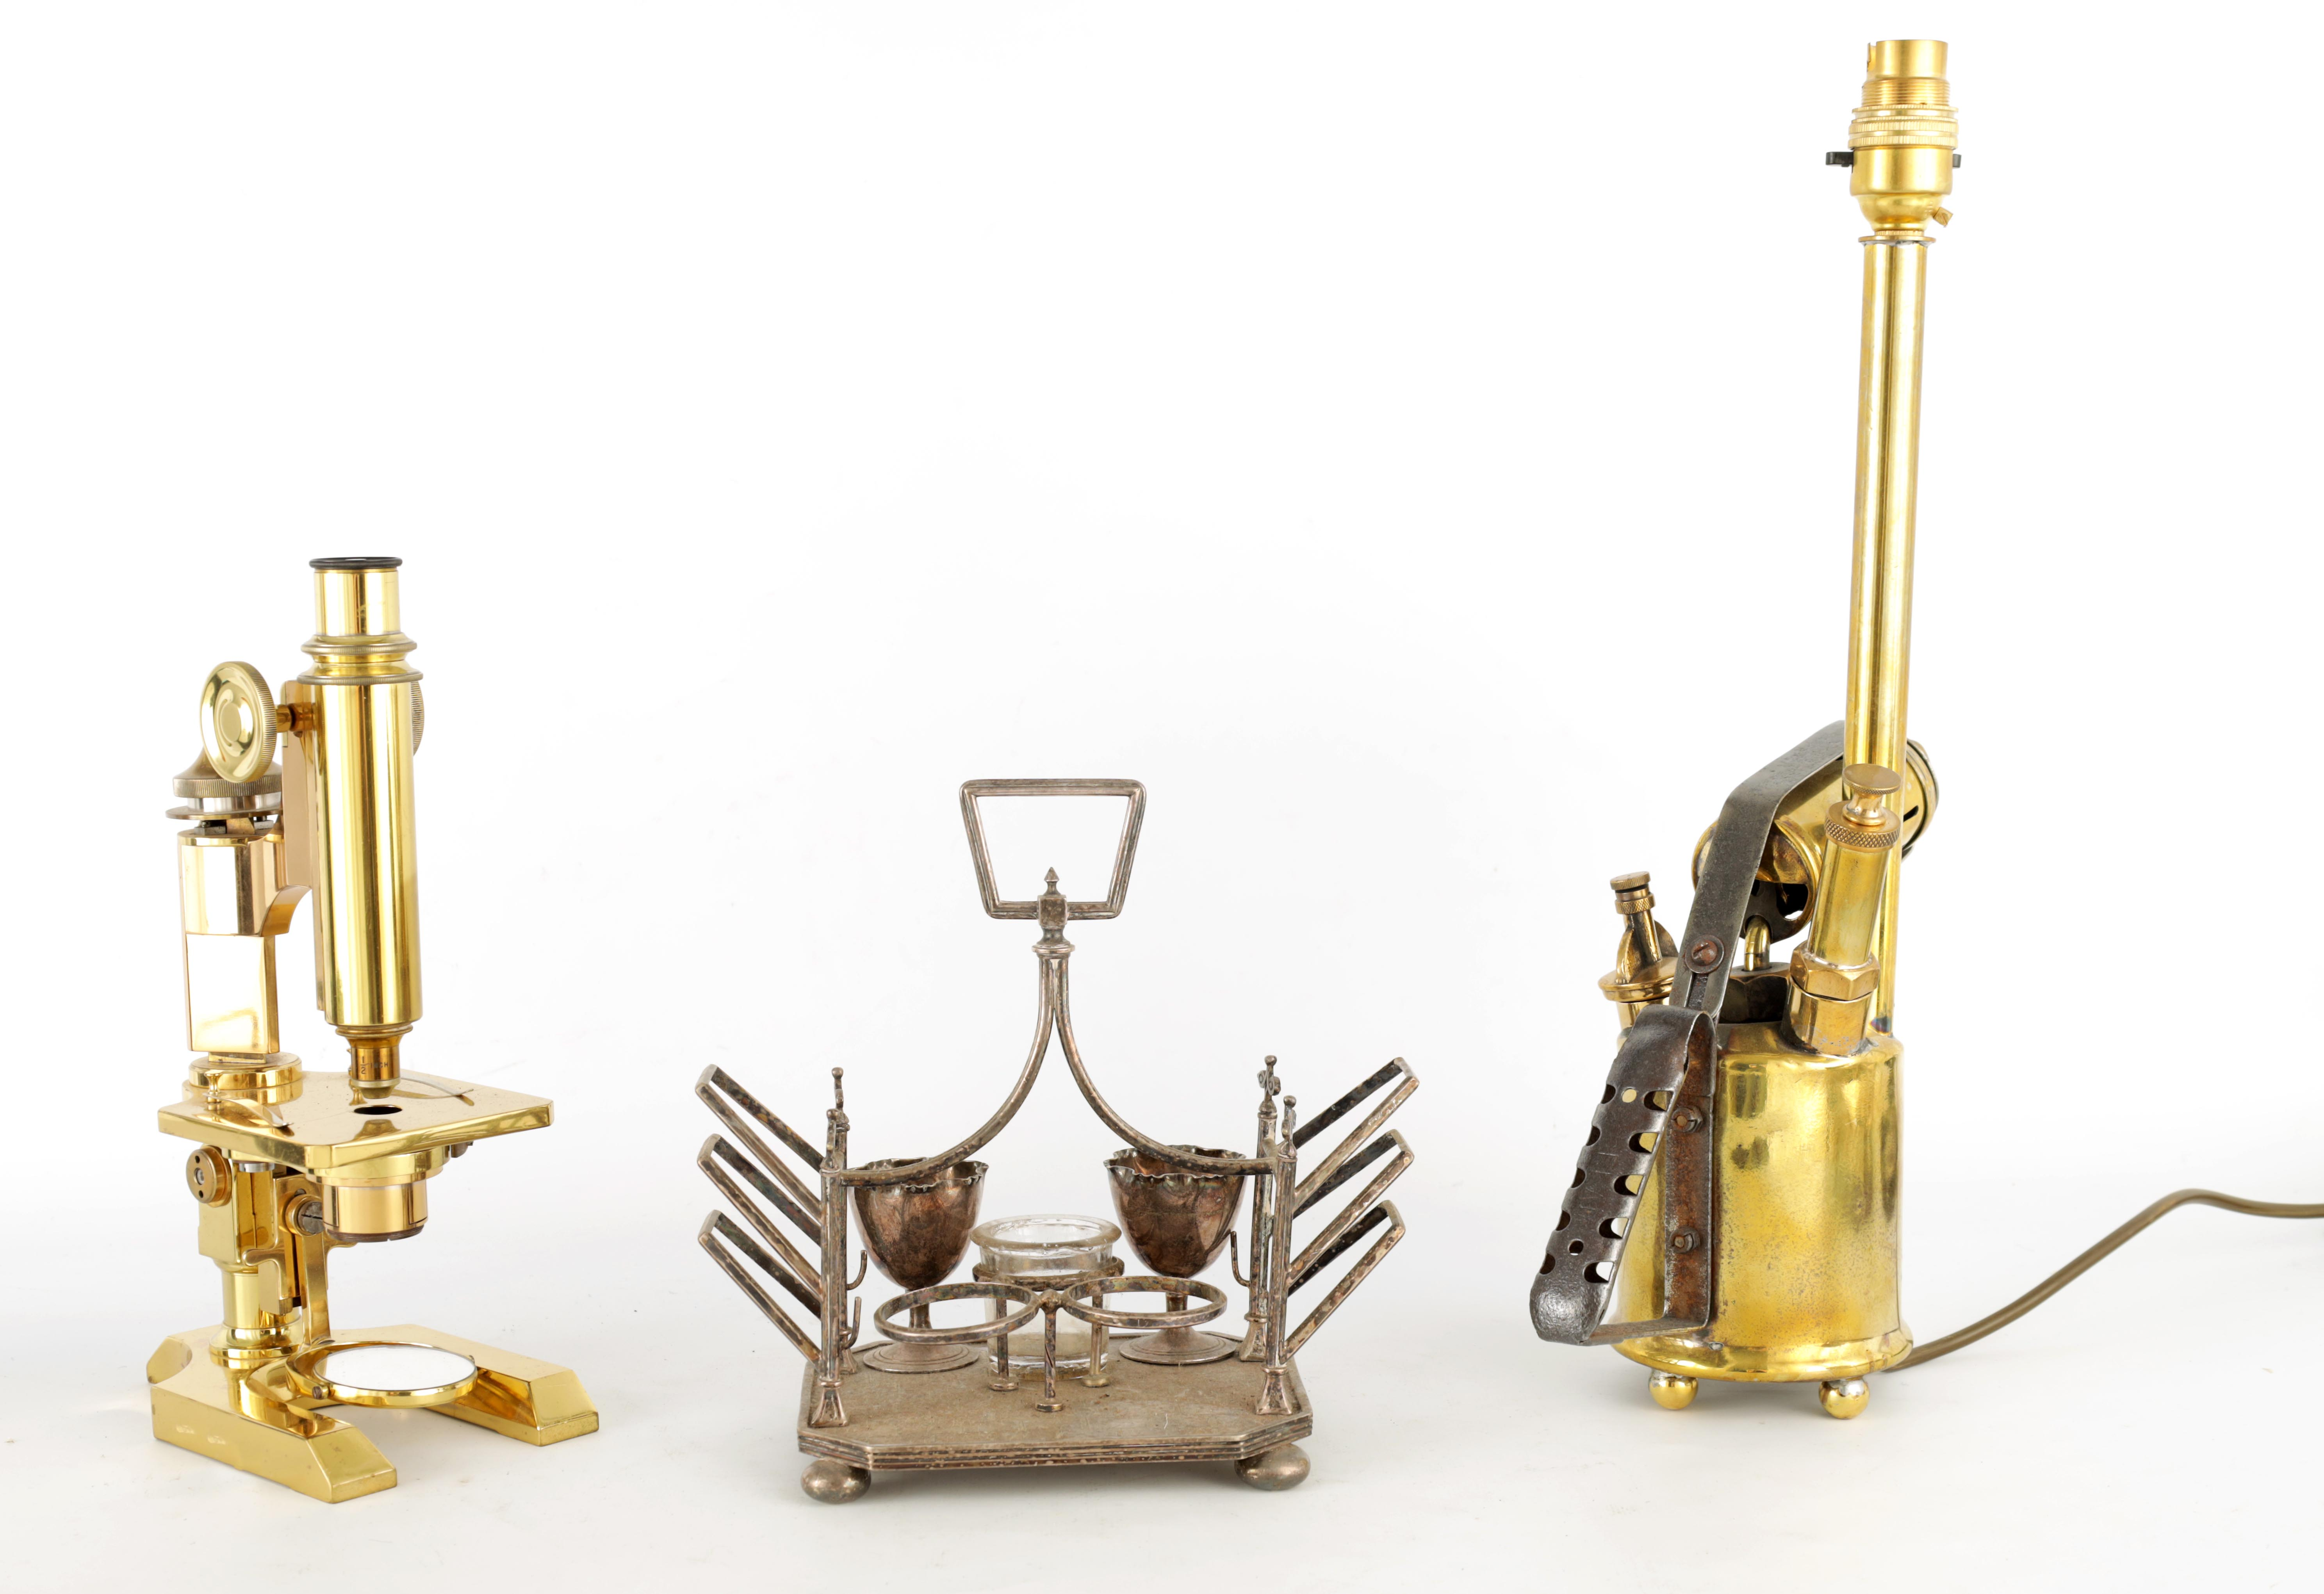 A 19TH CENTURY LACQUERED BRASS MONOCULAR MICROSCOPE with shaped base and rack and pinion focusing